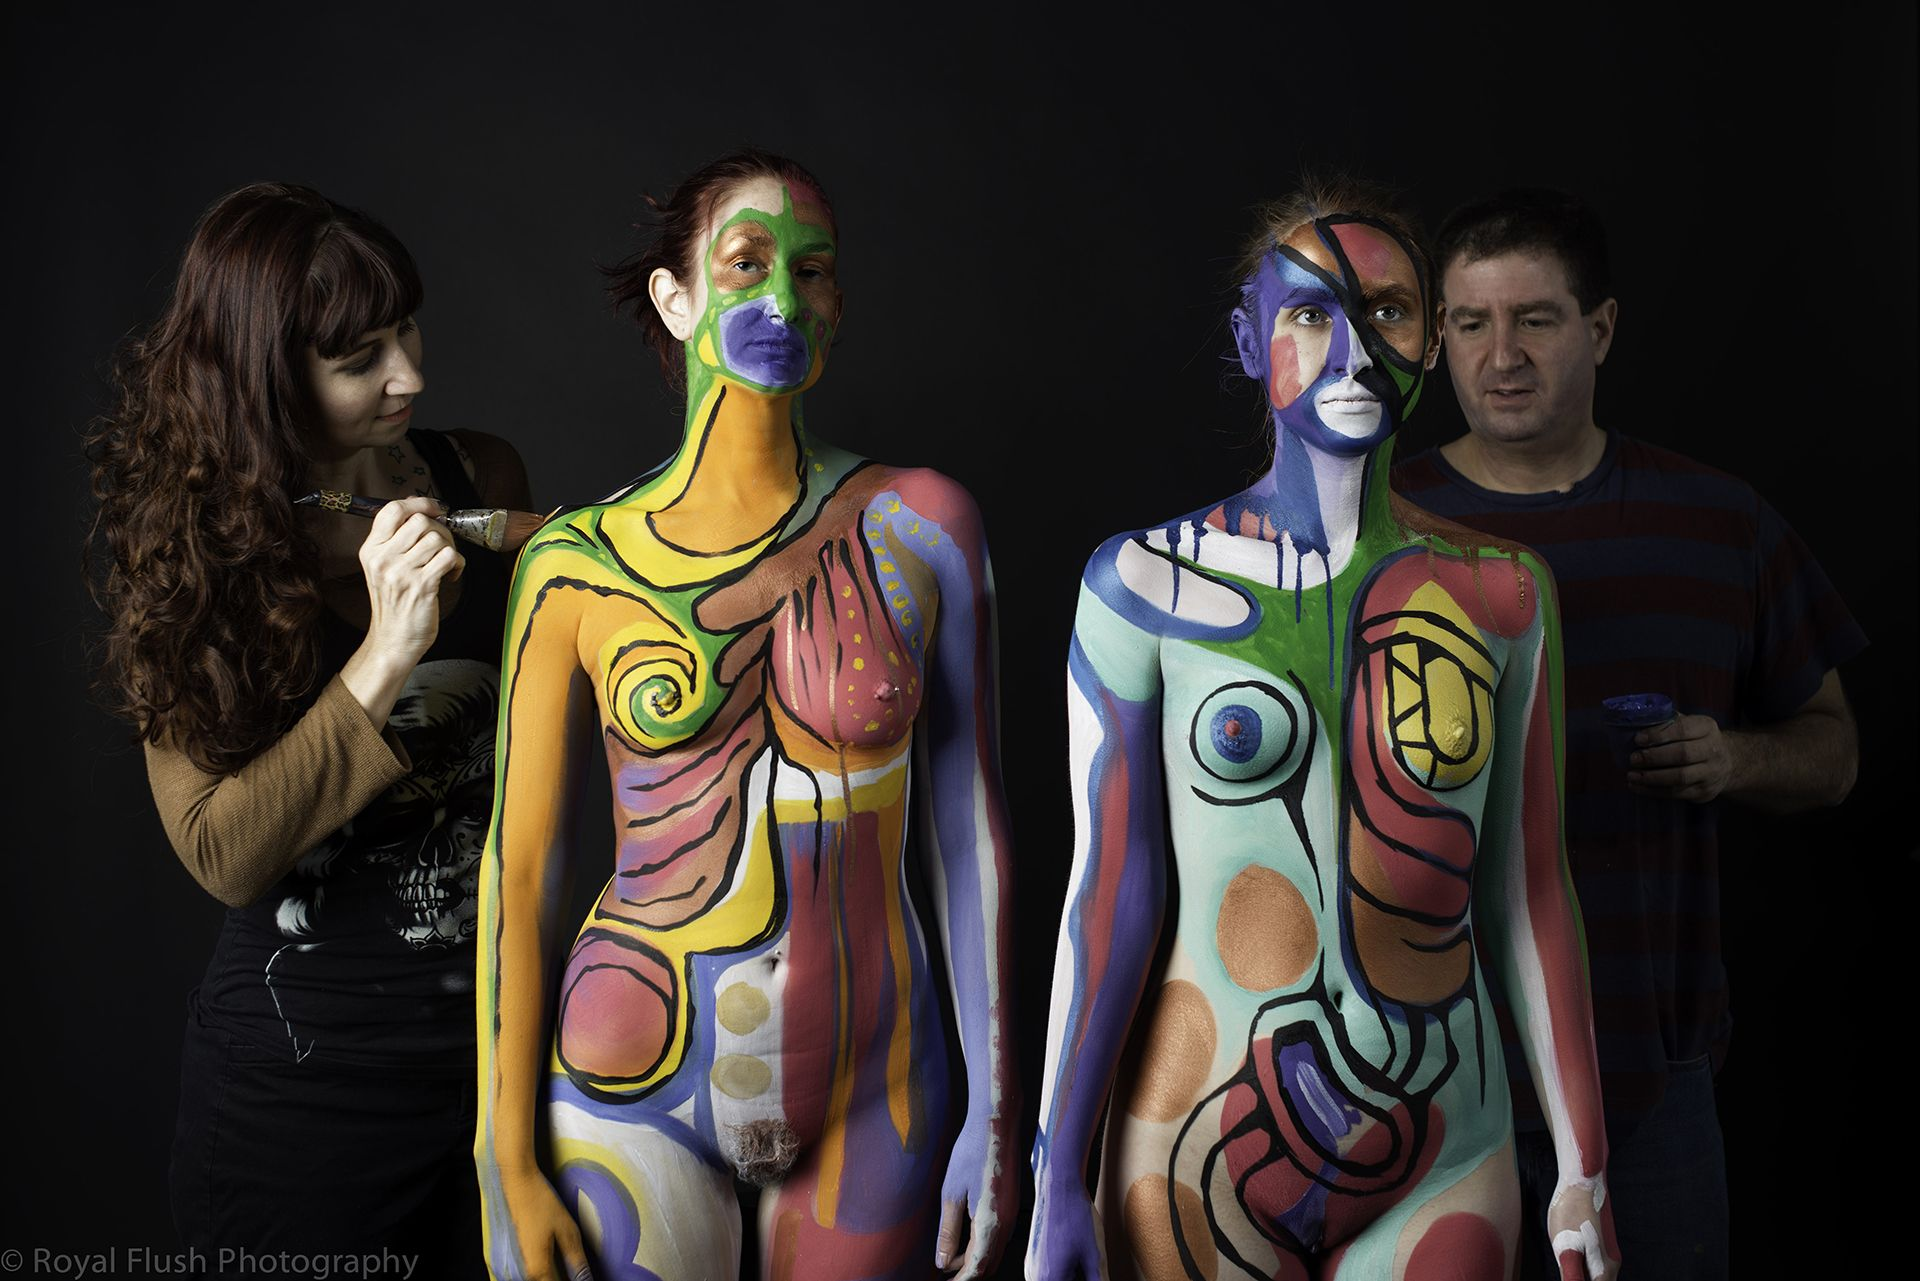 Dominated sex image of naked body paint of male